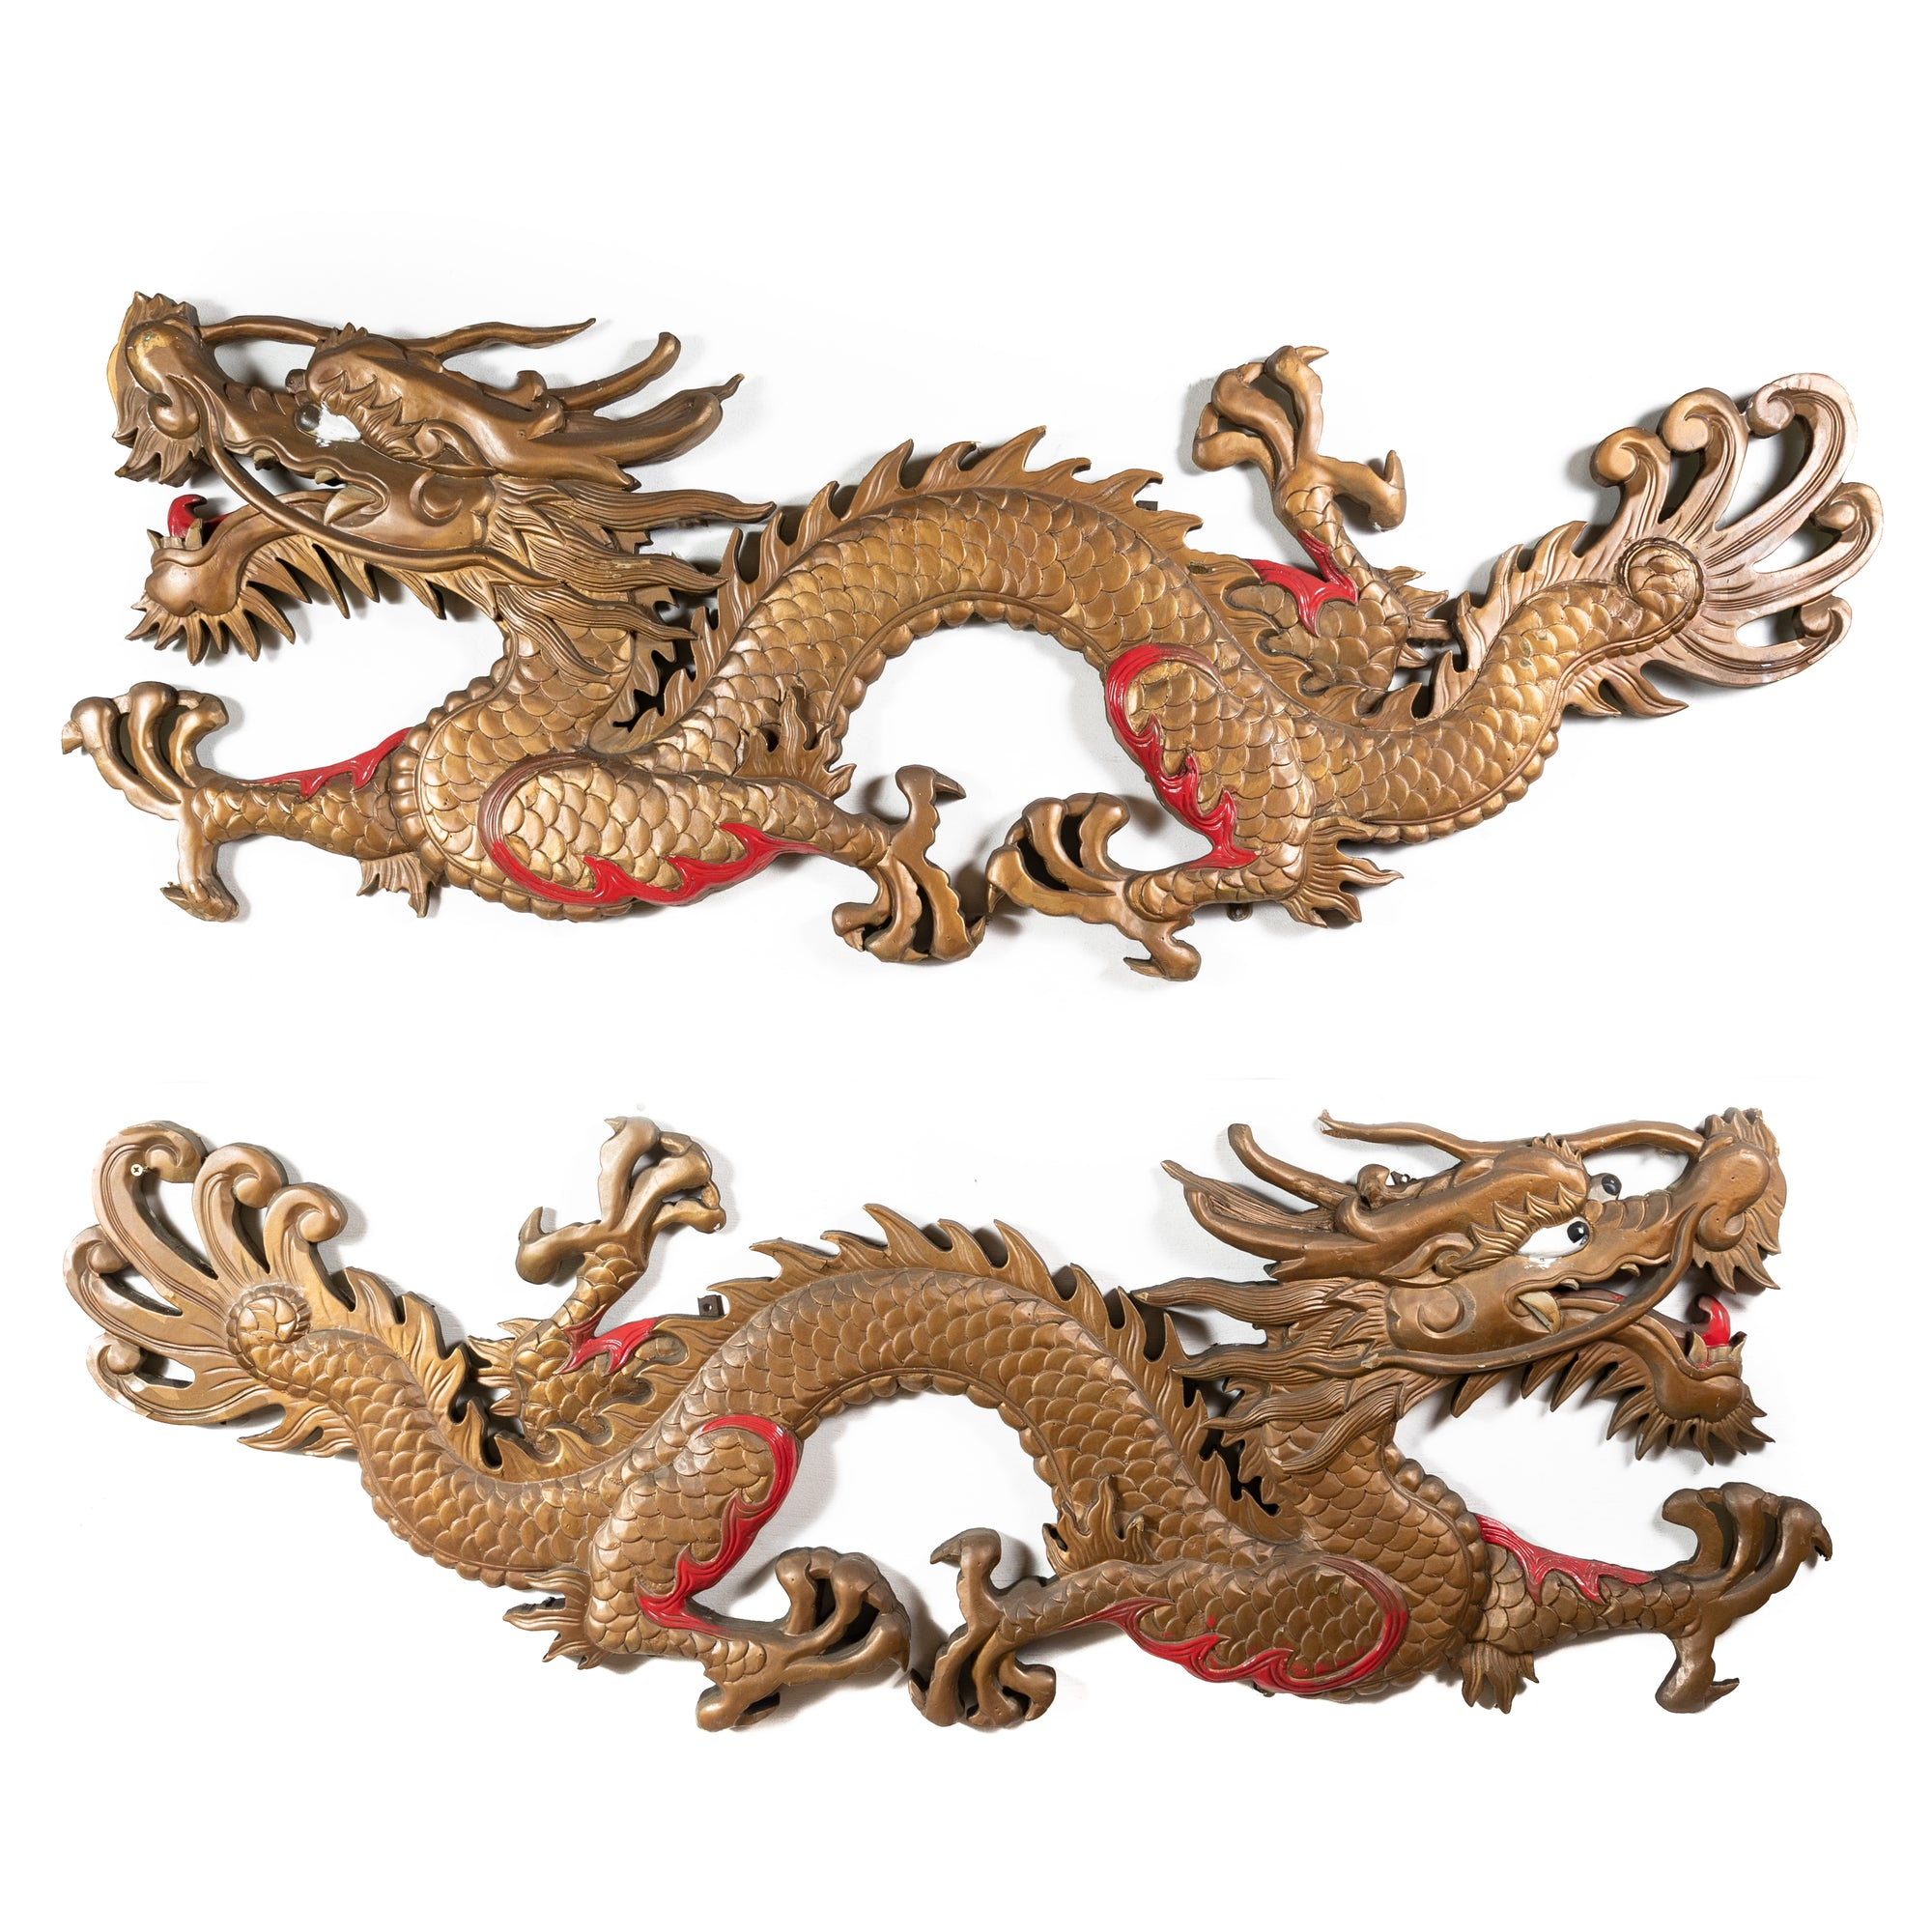 Large Chinese Dragons From London's China Town